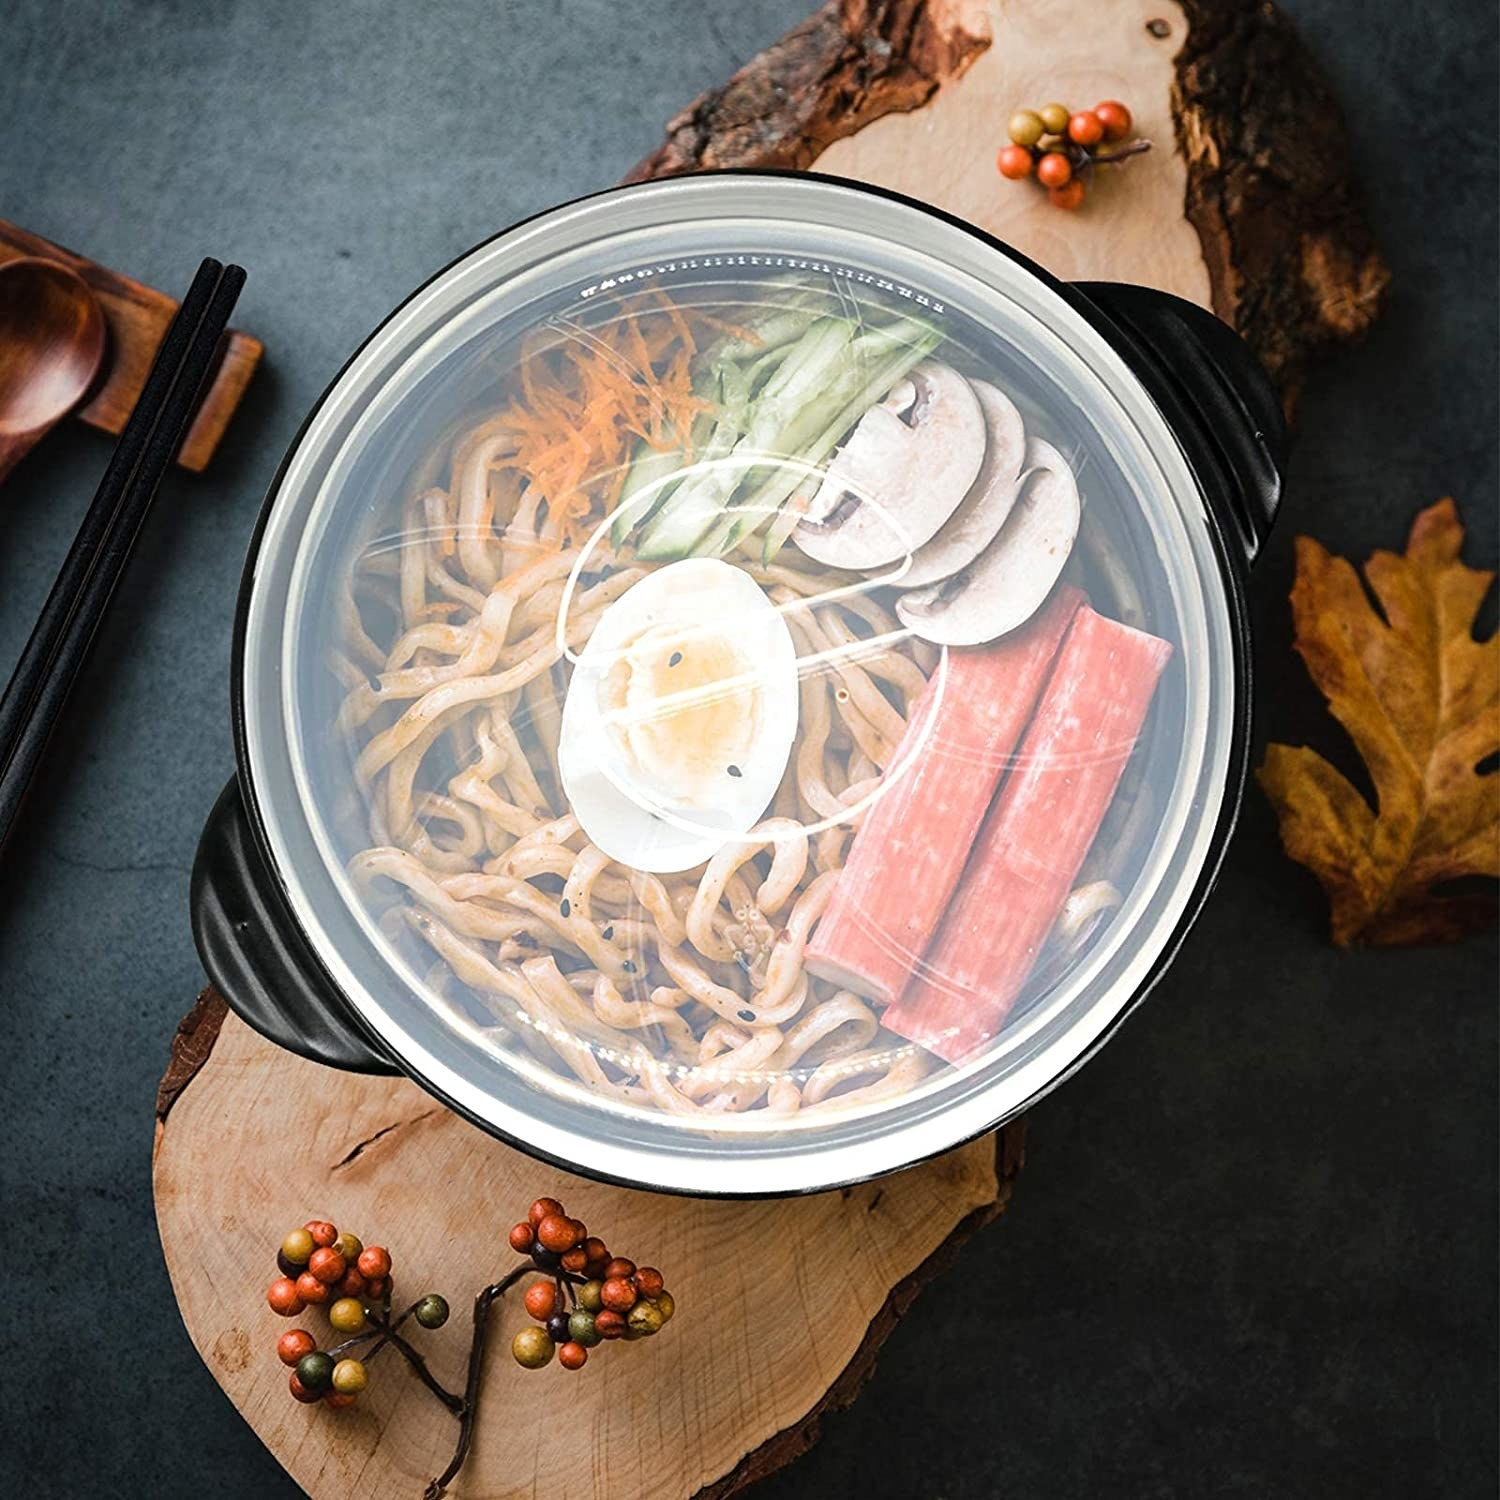 The bowl filled with udon on a wooden serving board